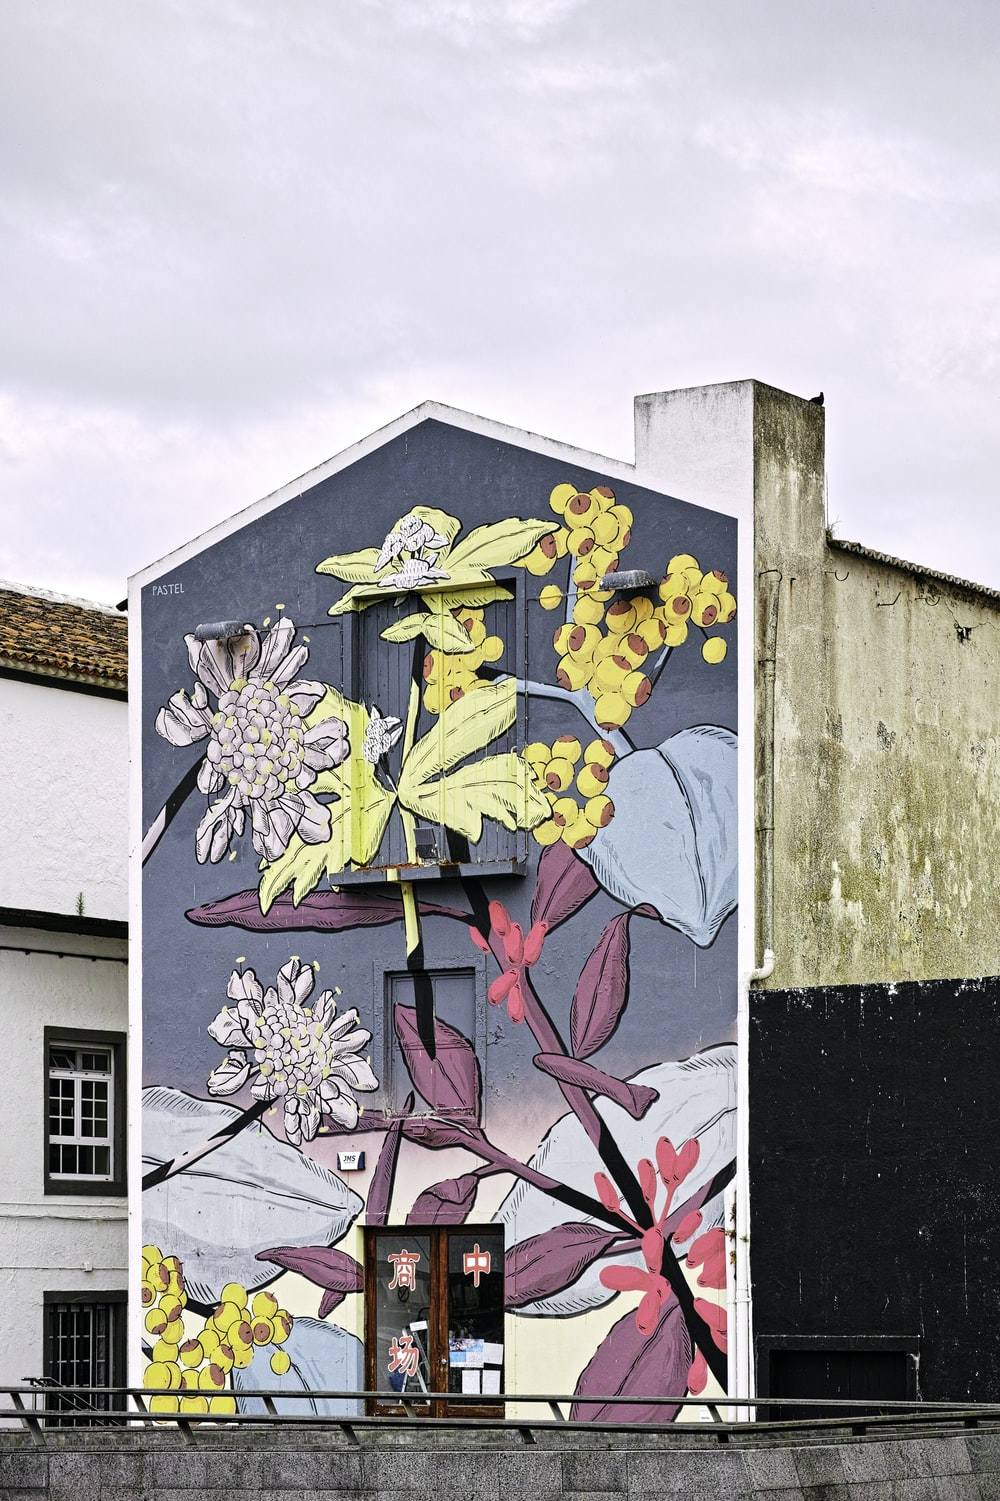 multicolored floral painting on building at daytime